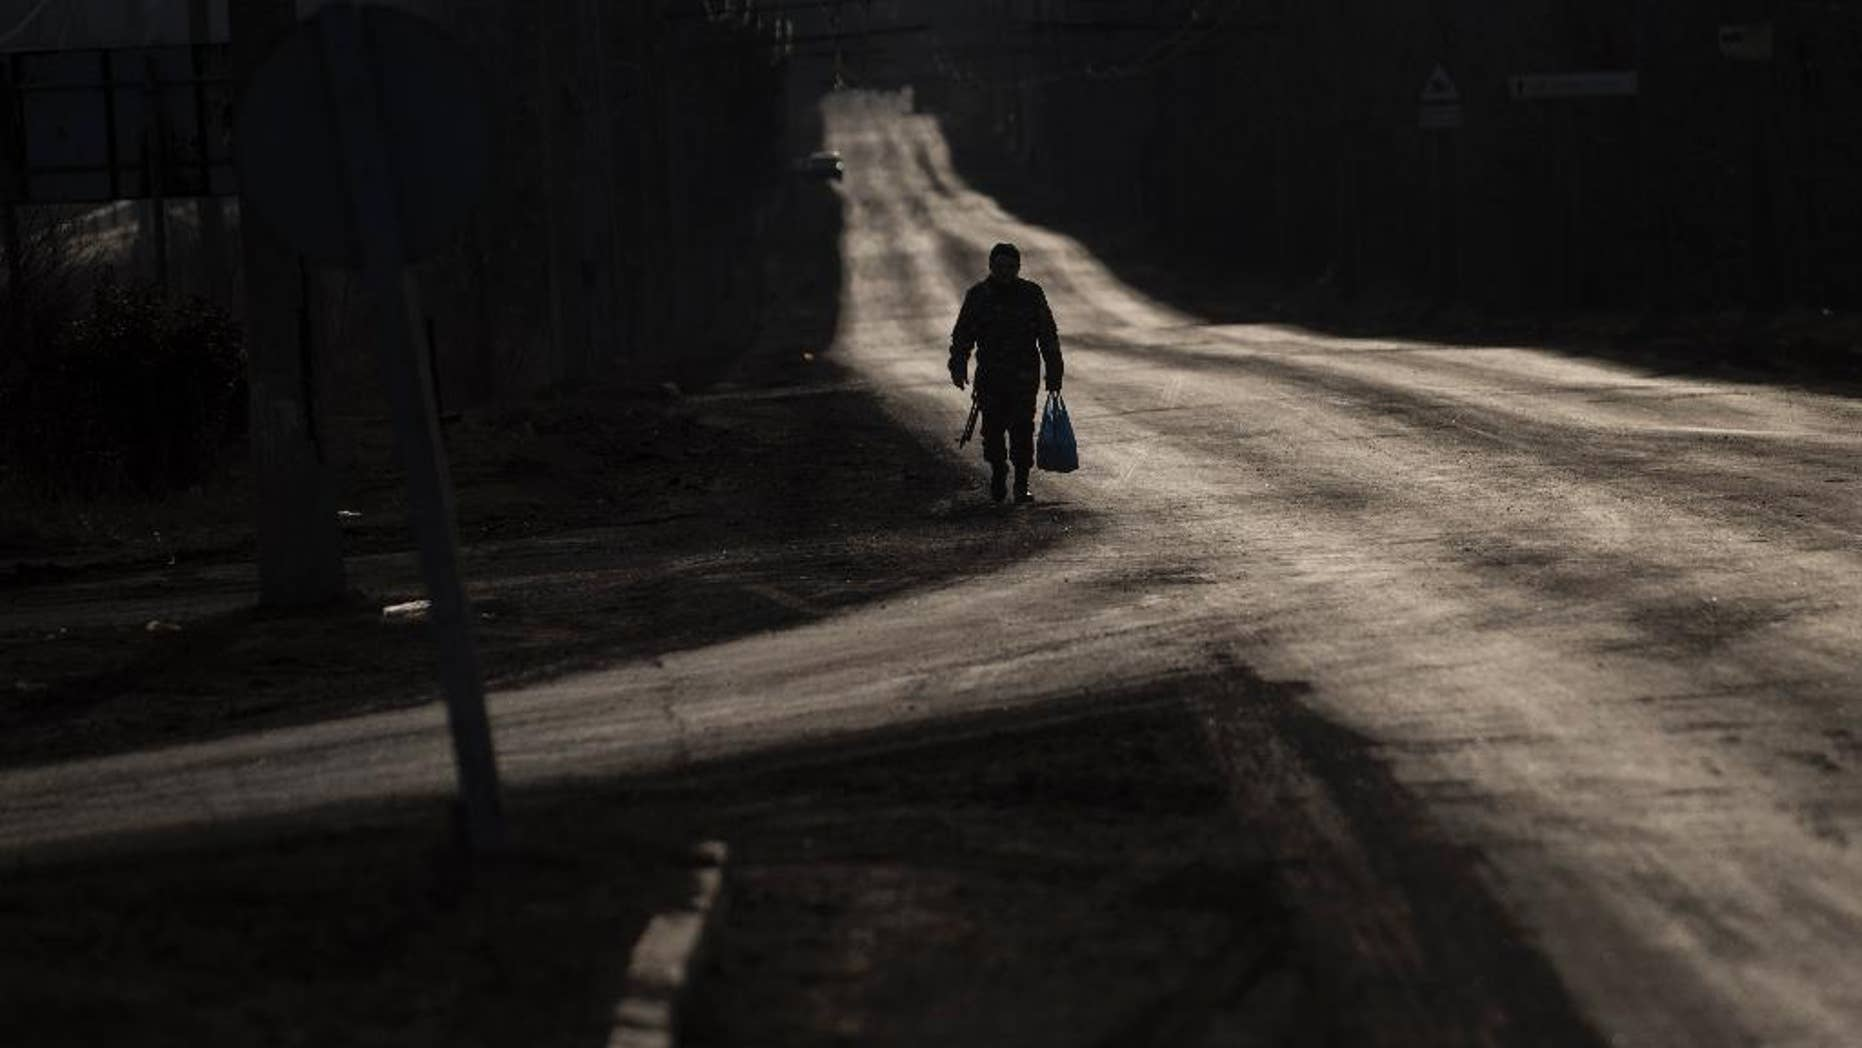 A Ukrainian serviceman walks on an empty road near Artemivsk, eastern Ukraine, Friday, March 6, 2015. Ukrainian military officials say government forces are withdrawing heavy rocket launchers from the front line with Russian-backed separatists in accordance with last month's cease-fire accord. (AP Photo/Evgeniy Maloletka)